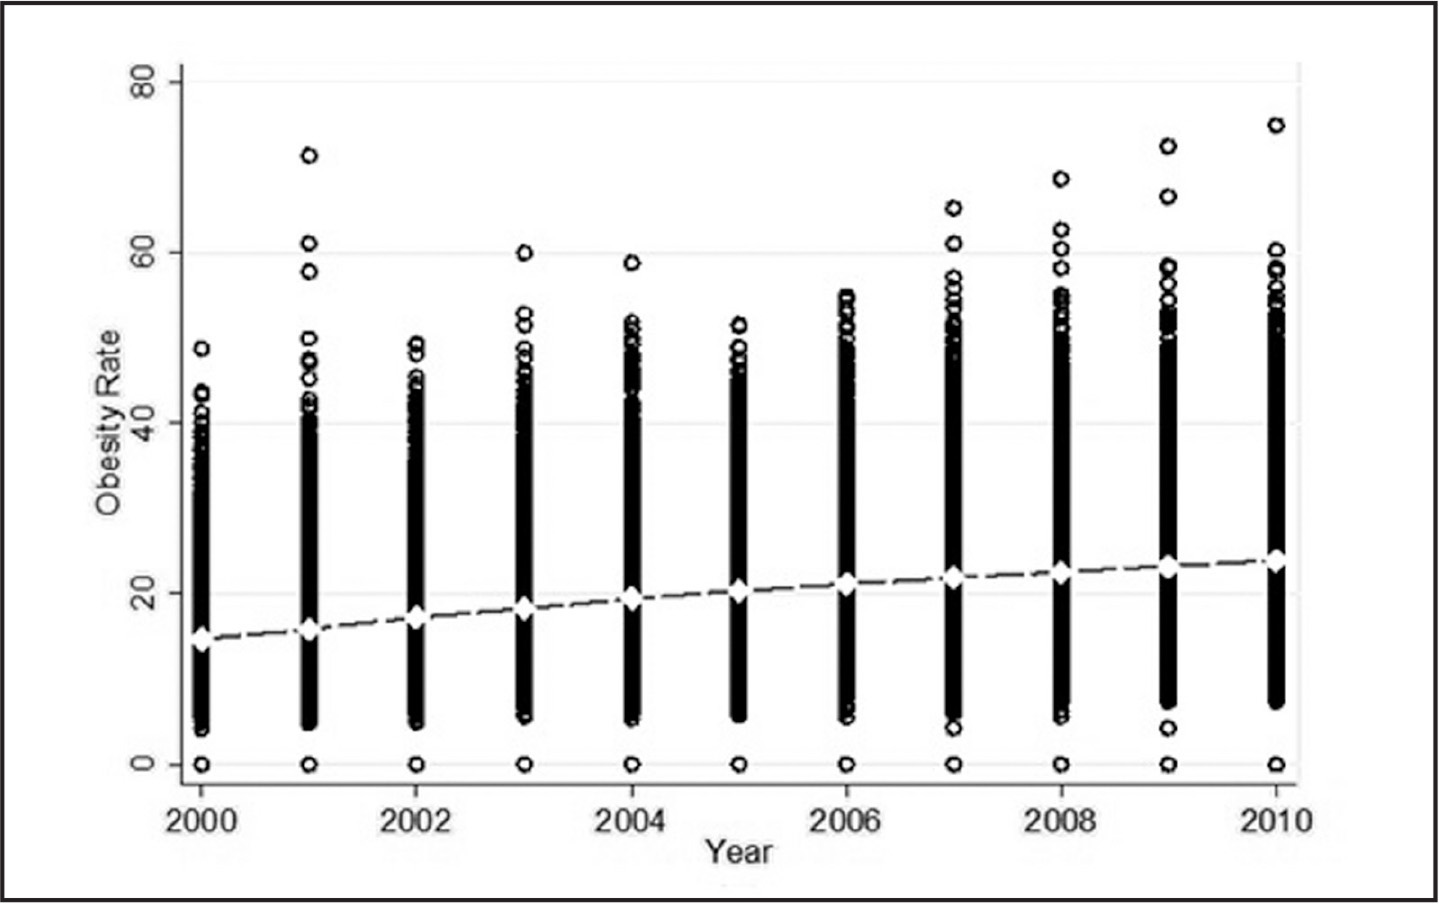 Annual moderate to severe obesity rates in U.S. nursing homes (black circle) and mean U.S. rate (line with white diamond), by year, 2000–2010.Data source: LTCFocus facility-level data files, 2000–2010; authors' calculations.